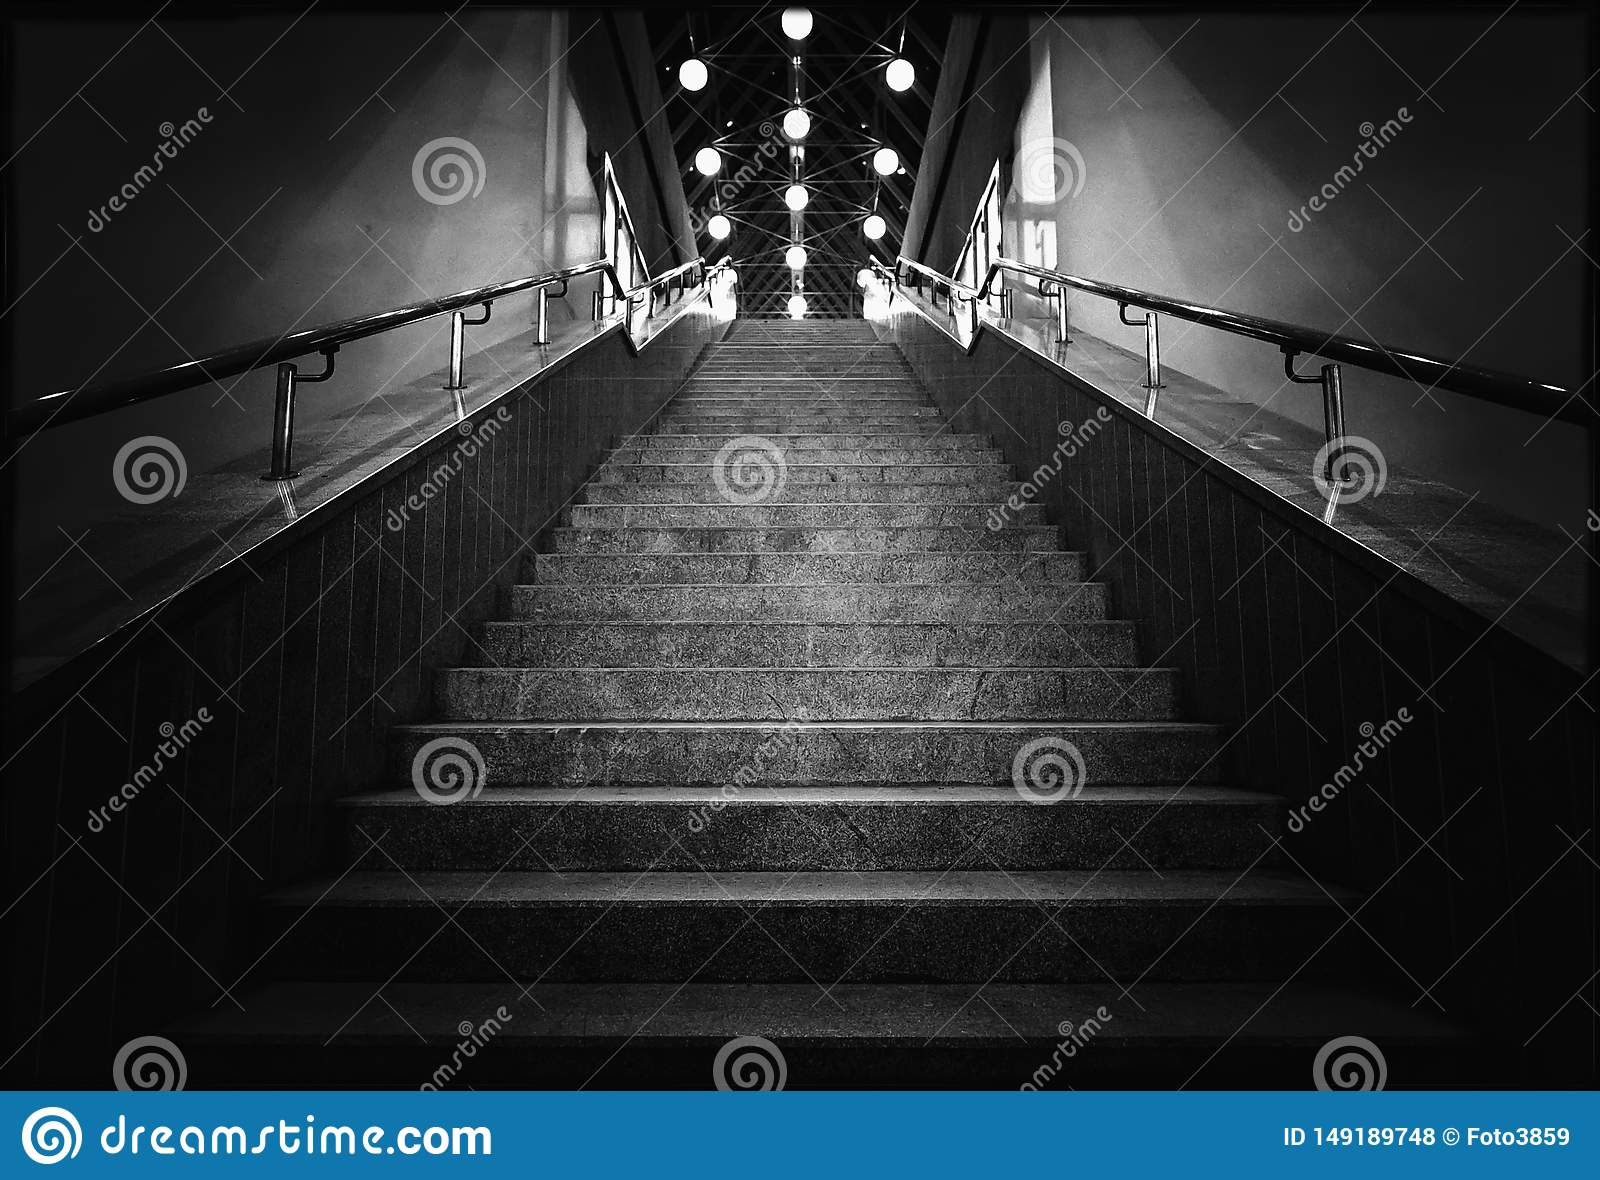 Black and white photo of night stairs with lanterns